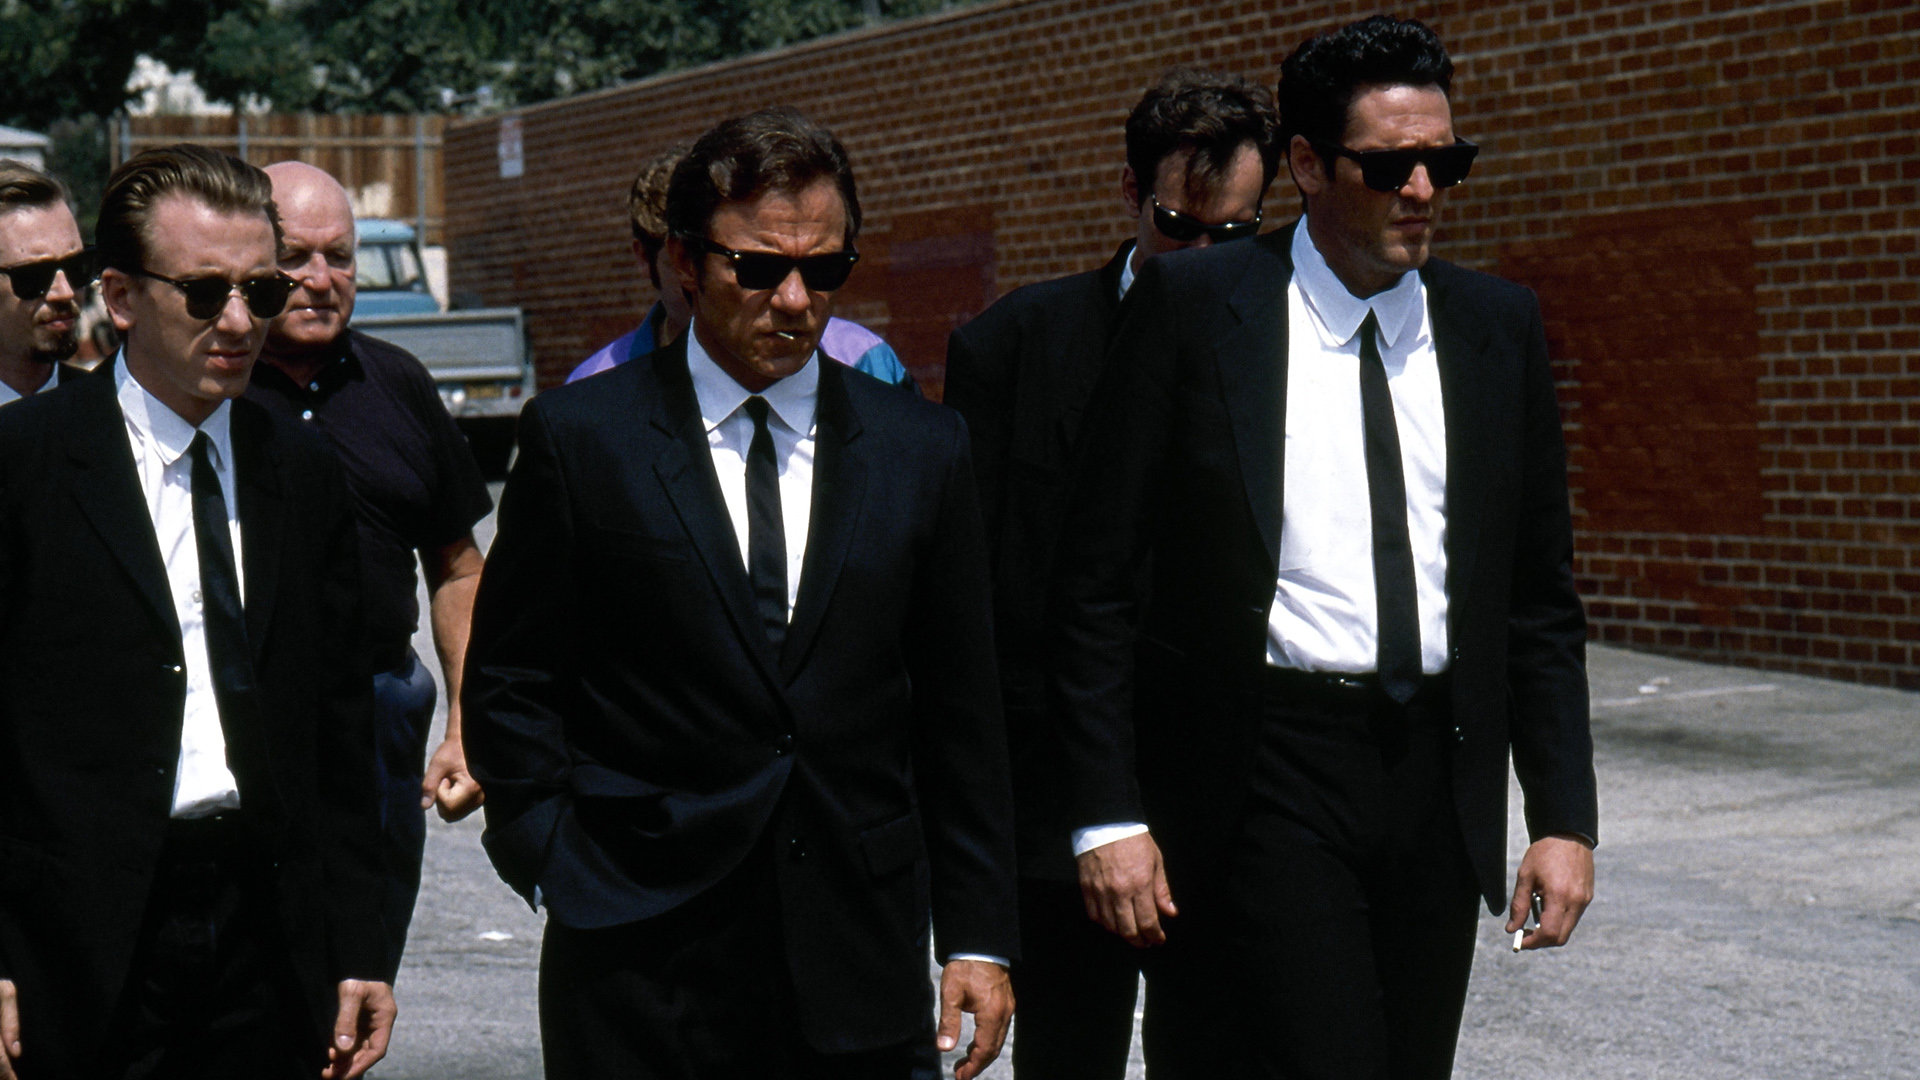 Reservoir Dogs wallpapers HD for desktop backgrounds